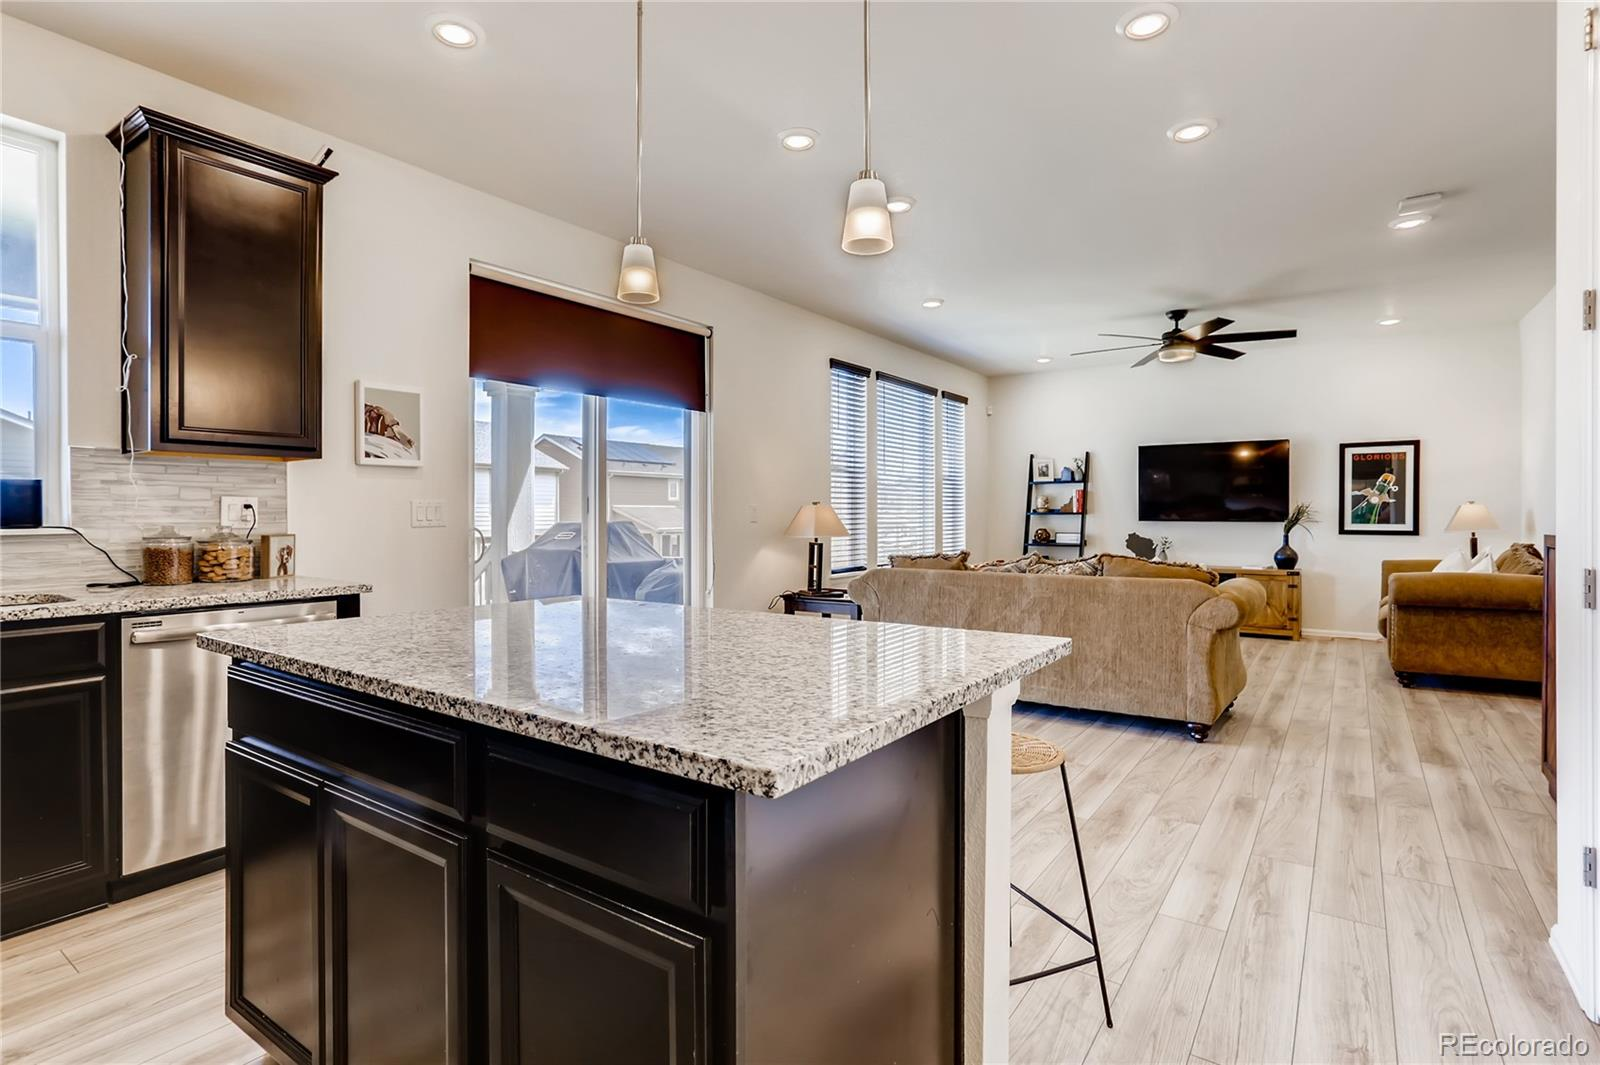 MLS# 2145354 - 12 - 26325 E Canal Place, Aurora, CO 80018